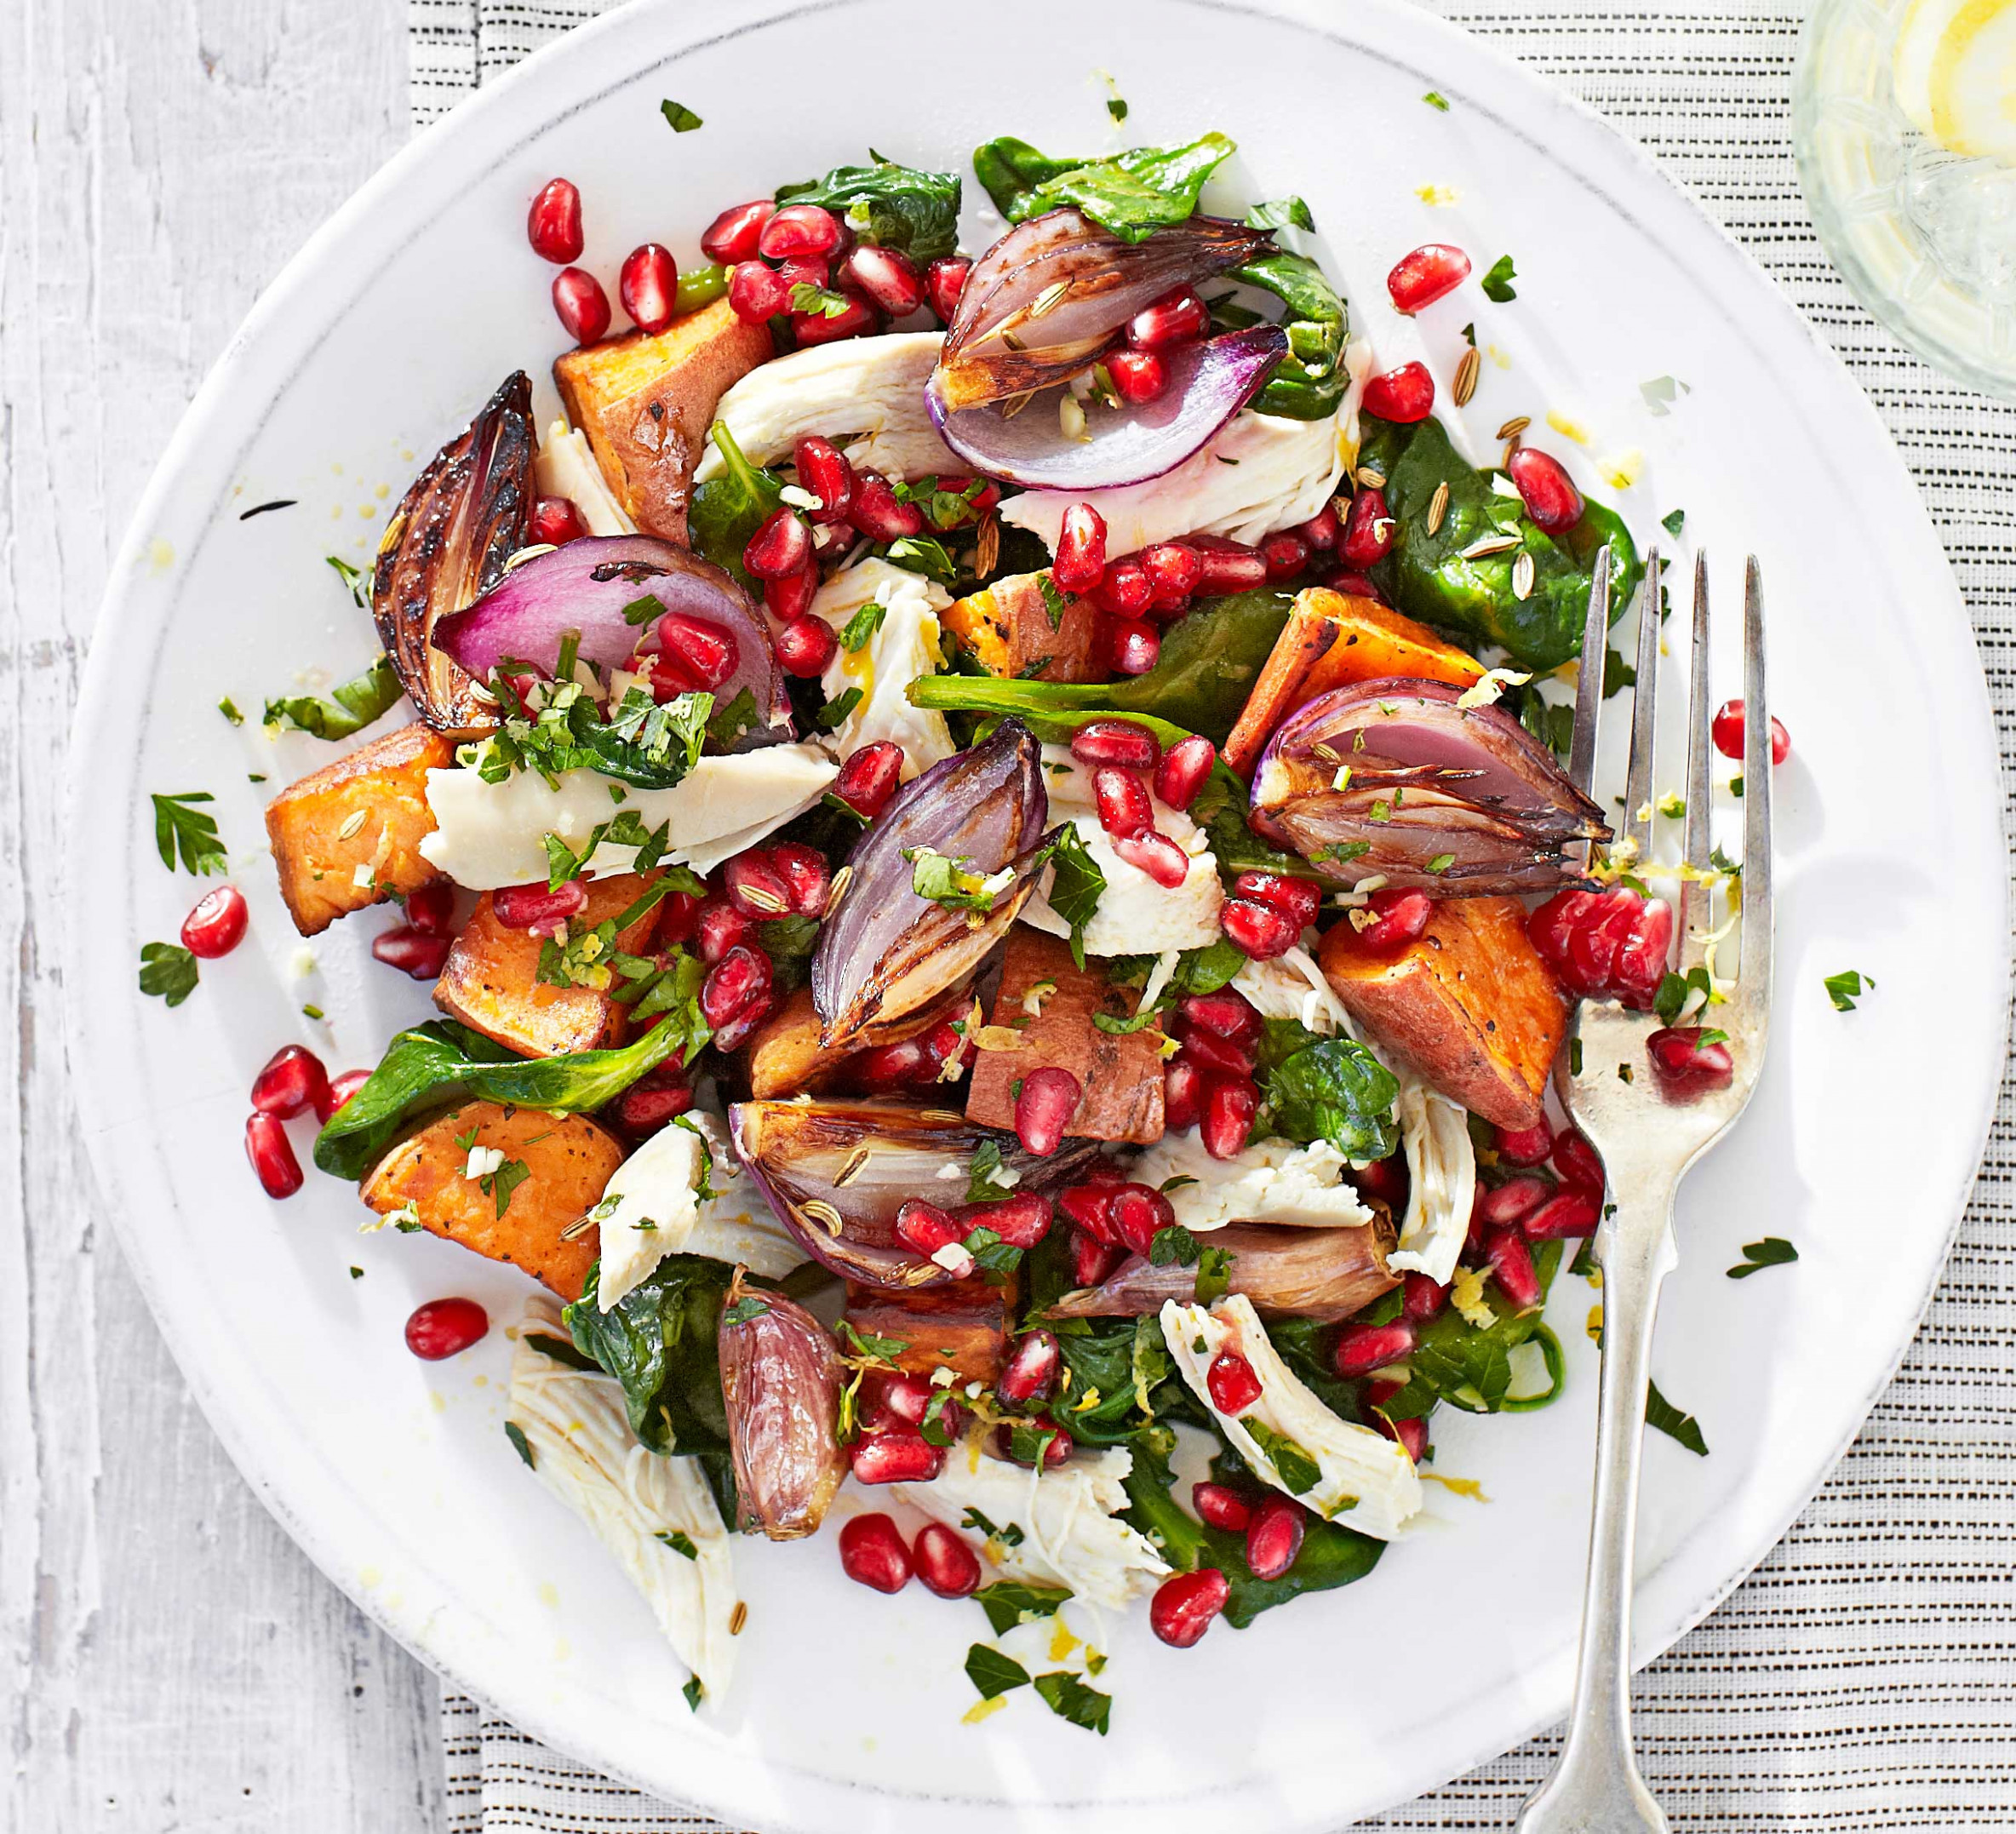 Whole foods recipes | BBC Good Food - clean eating recipes dinner